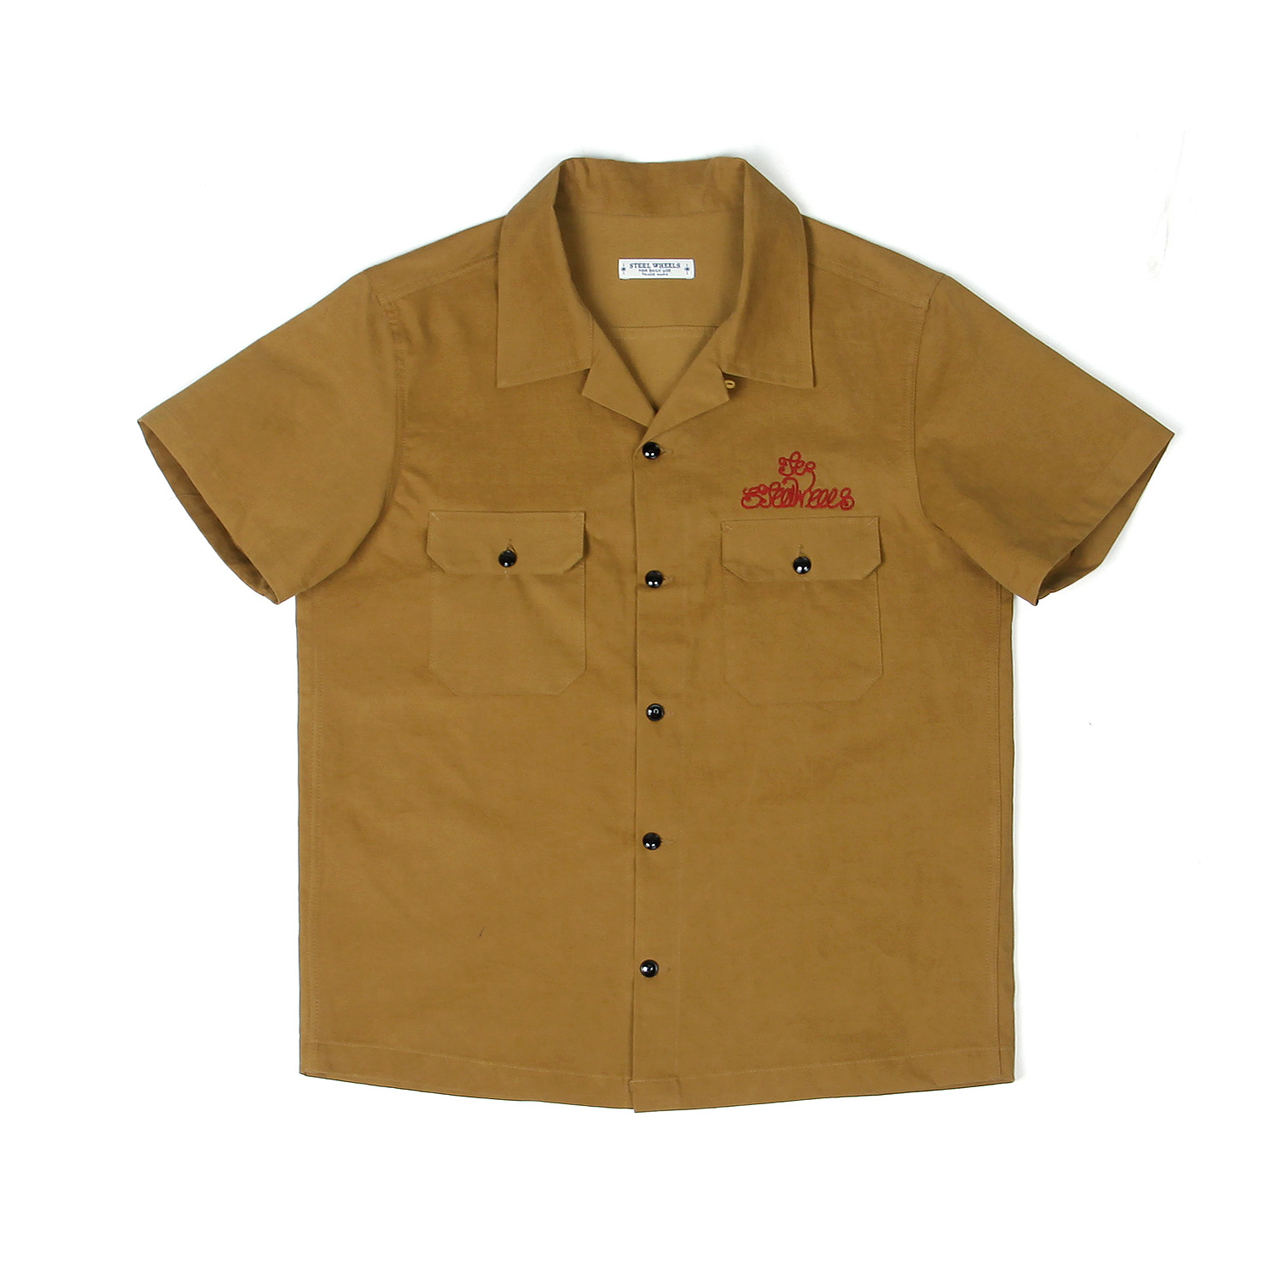 STEELWHEELS SHIRT-MUSTARD